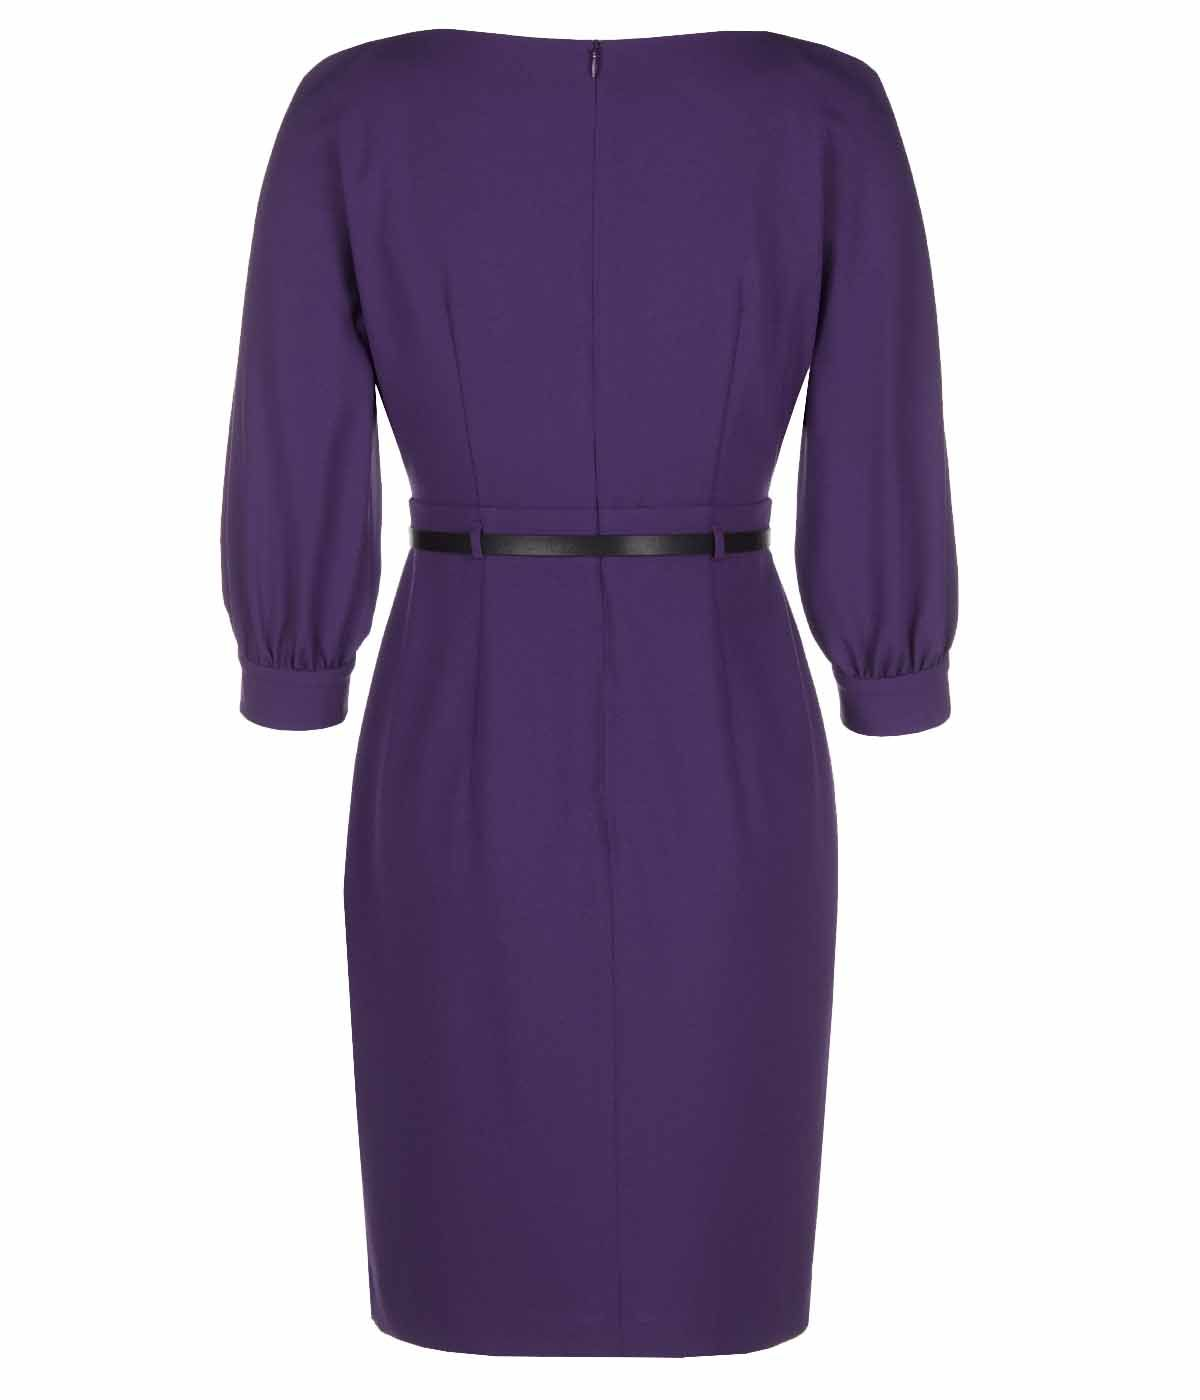 PURPLE LONG SLEEVES DRESS WITH LEATHER BELT 1